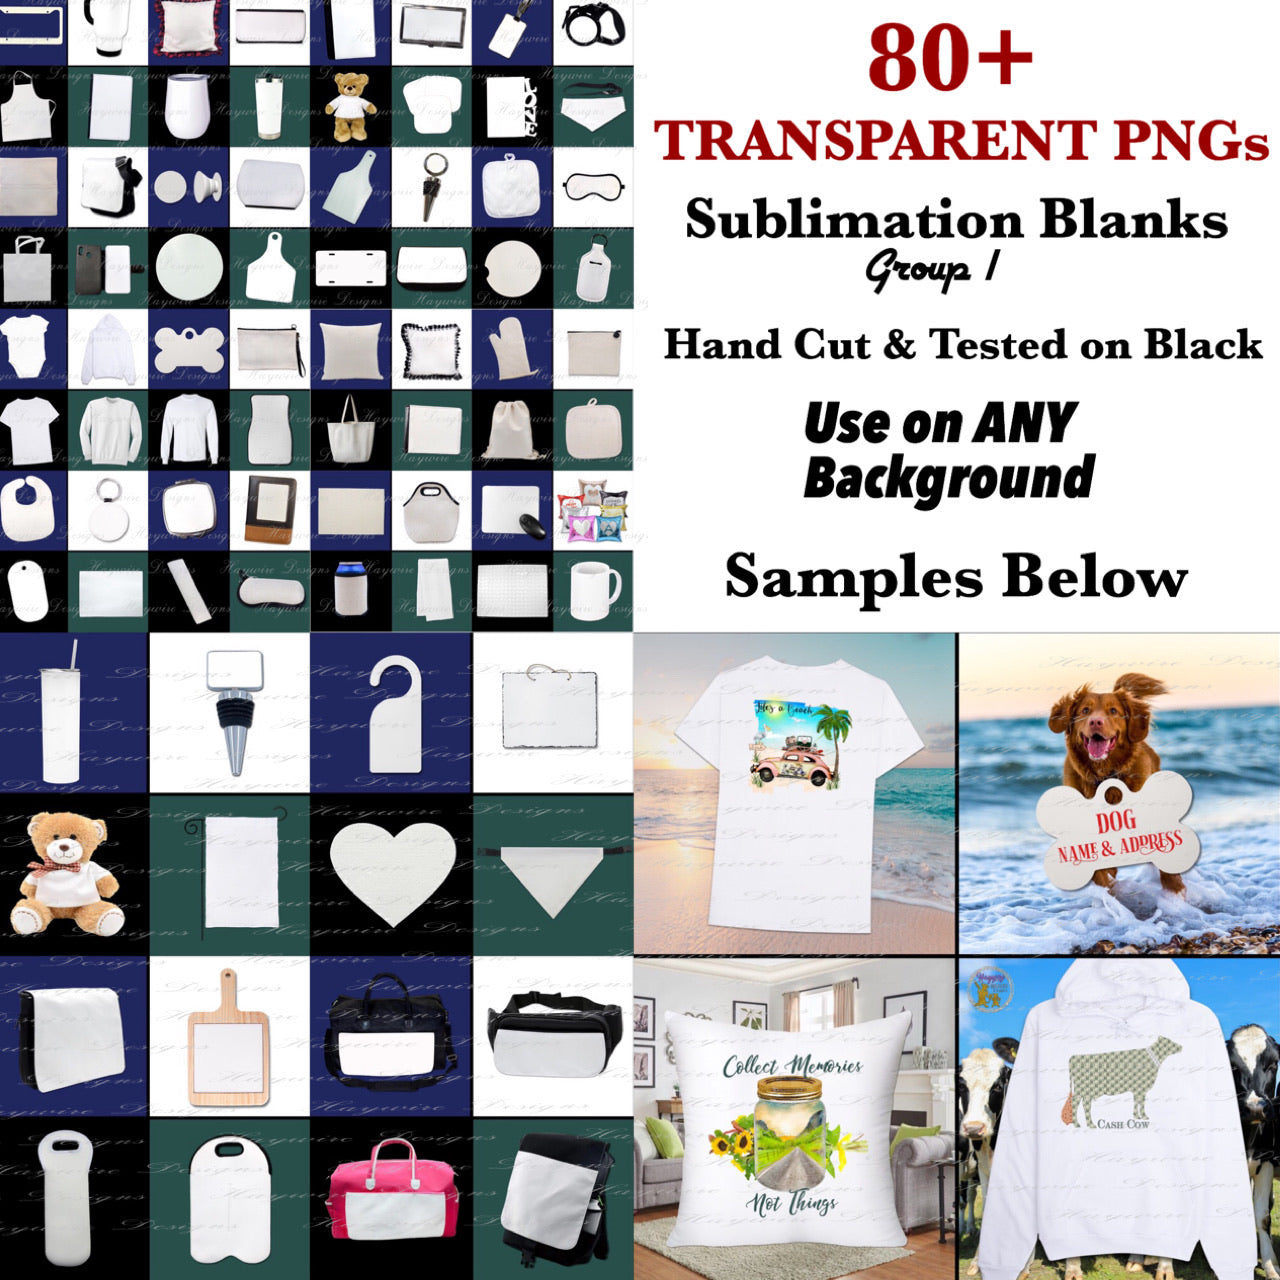 80 TRANSPARENT & DROP SHADOWED SUBLIMATION BLANKS - Hand Erased & Tested on Black